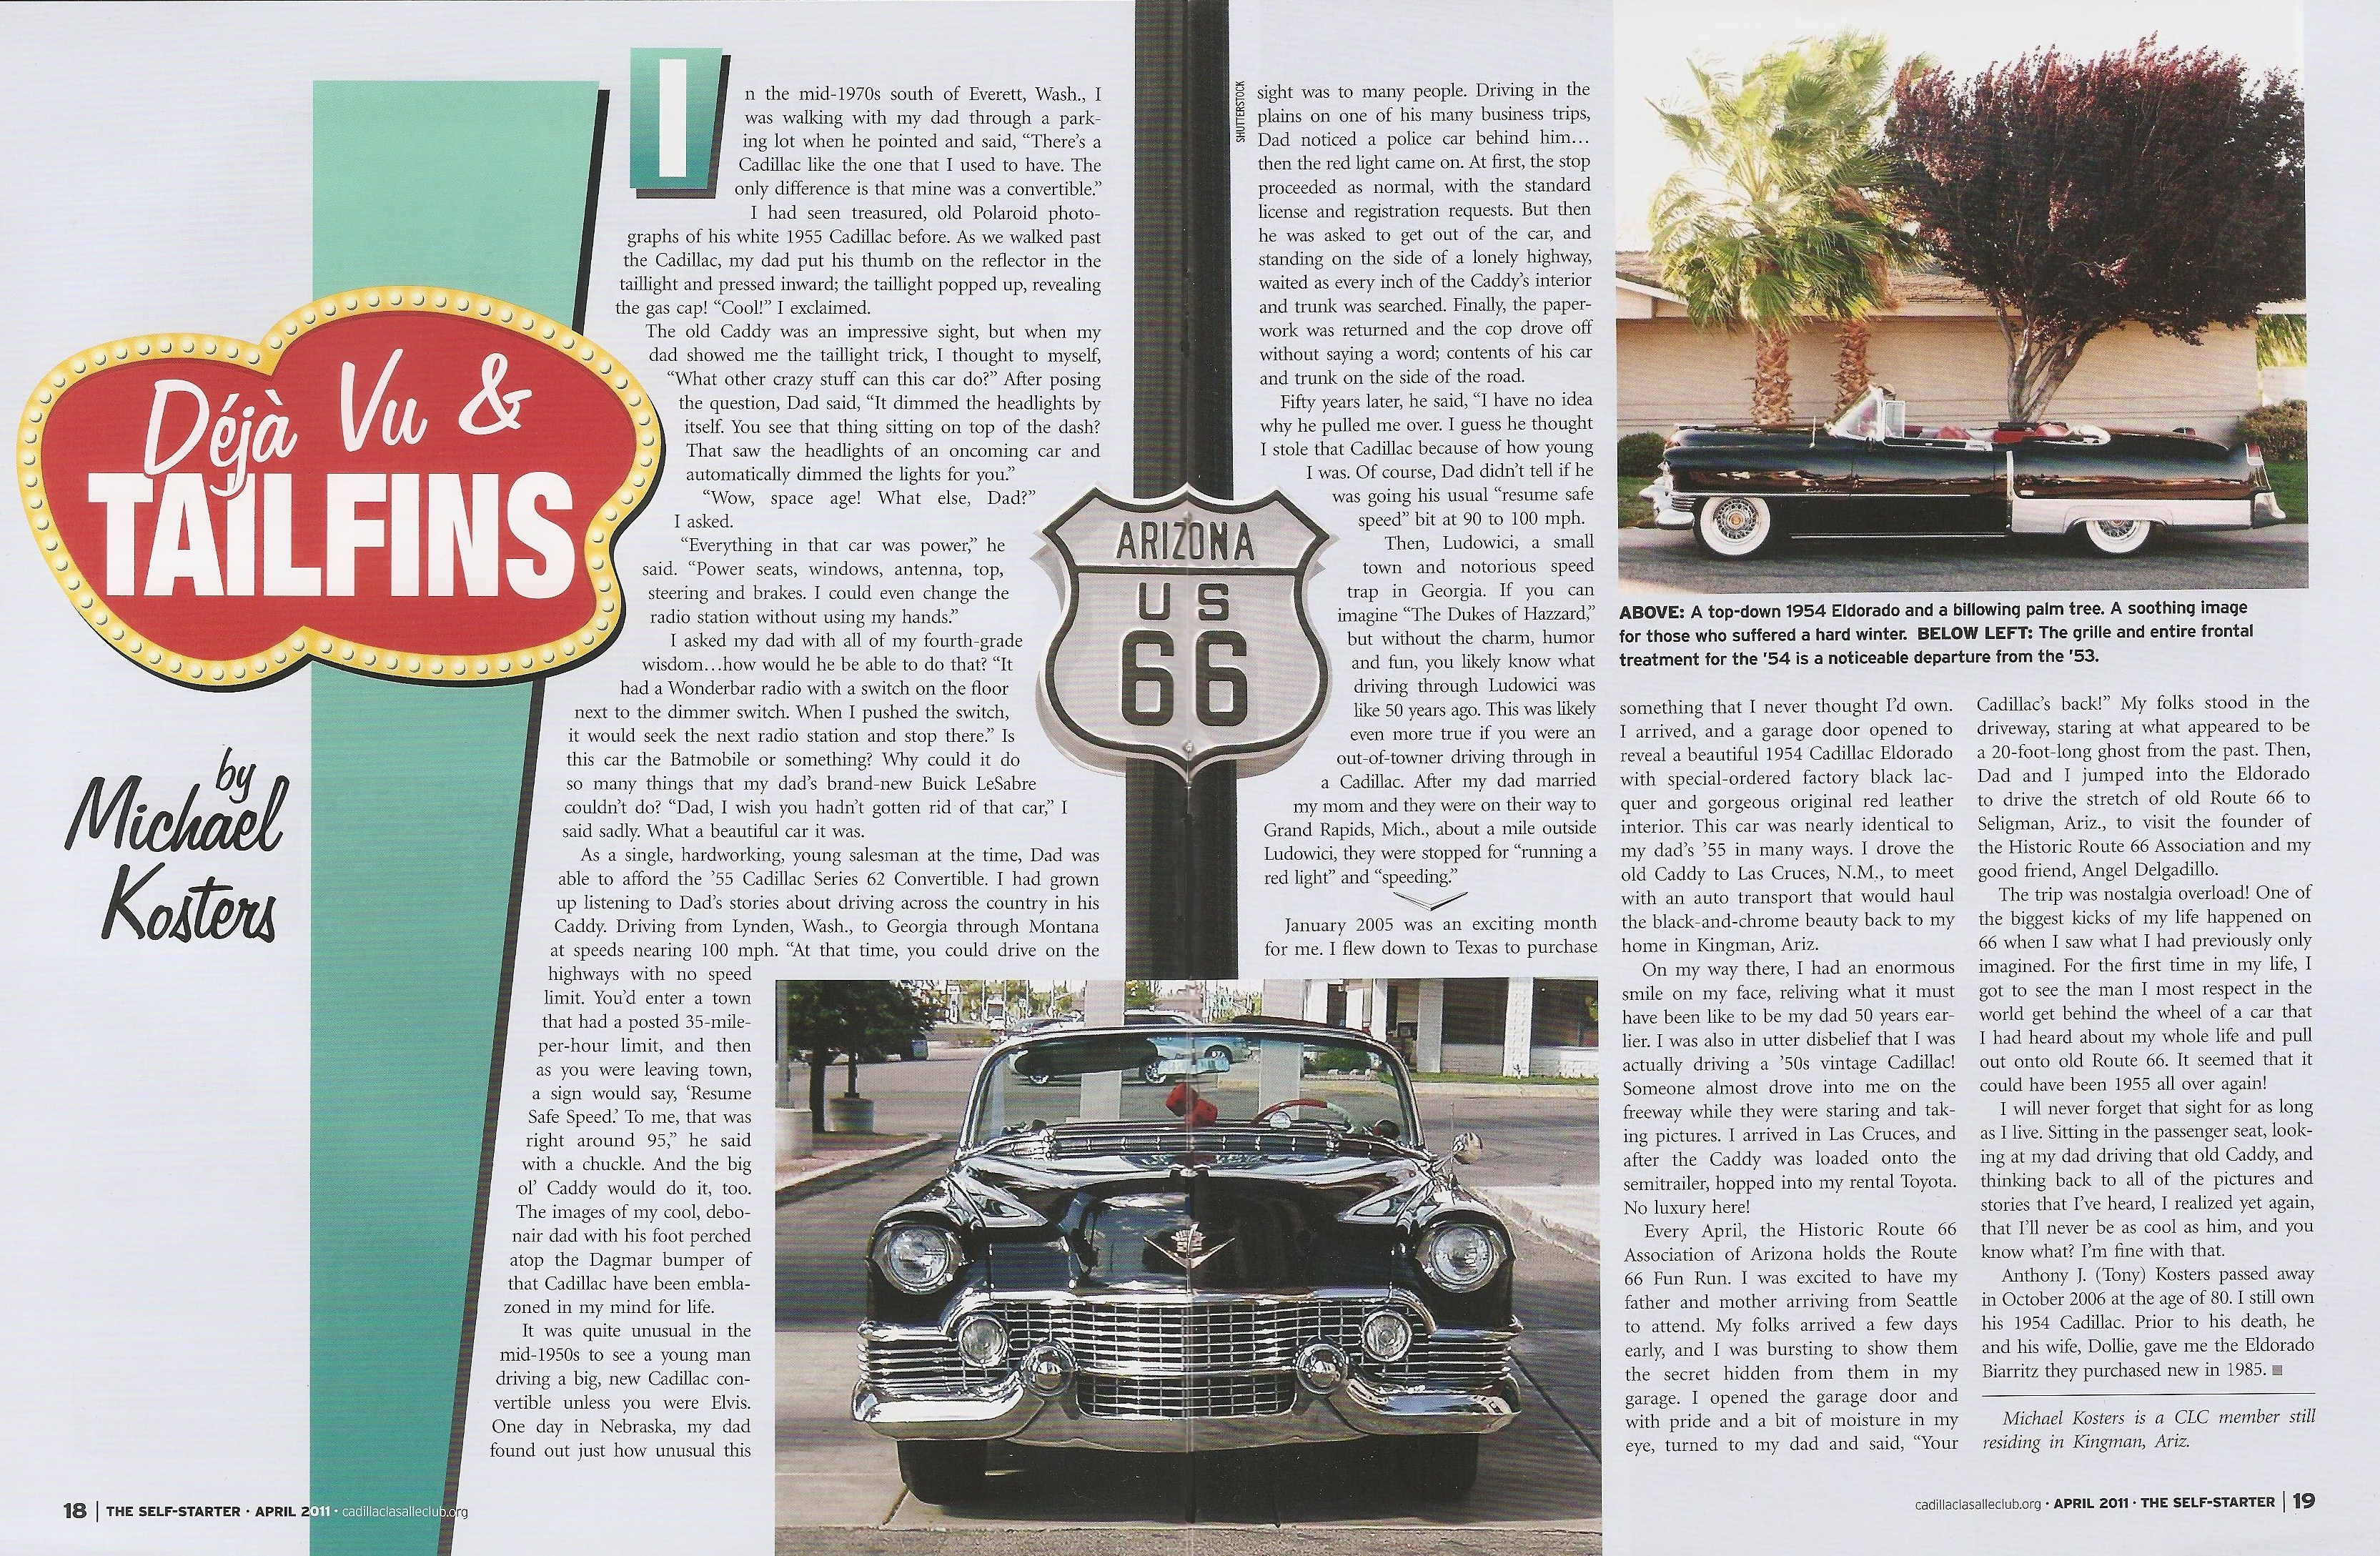 1954cadillacmikekostermagazinearticle.jpg